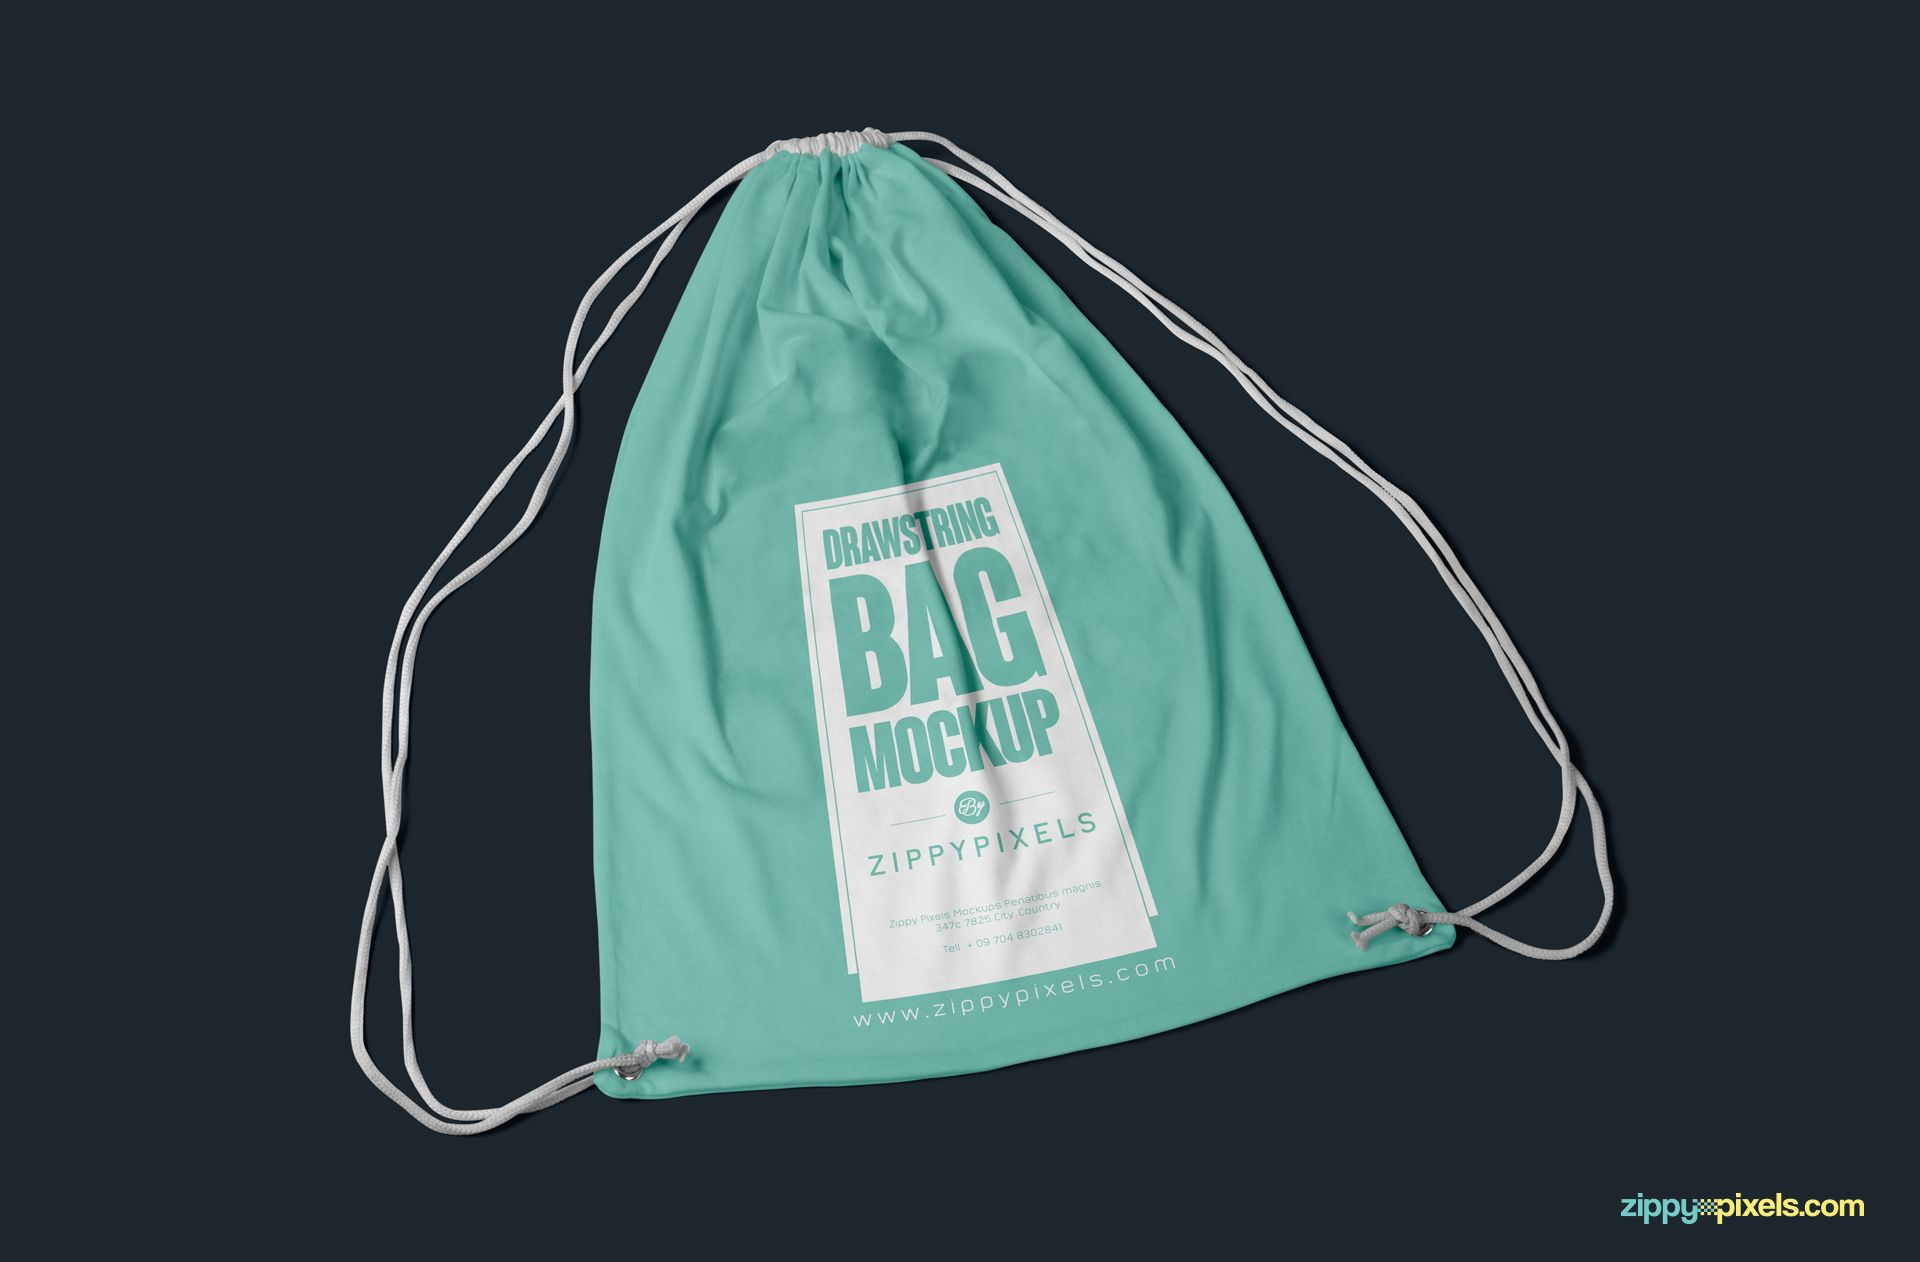 56181cae84e96 Free drawstring backpack mockup featuring sharp details